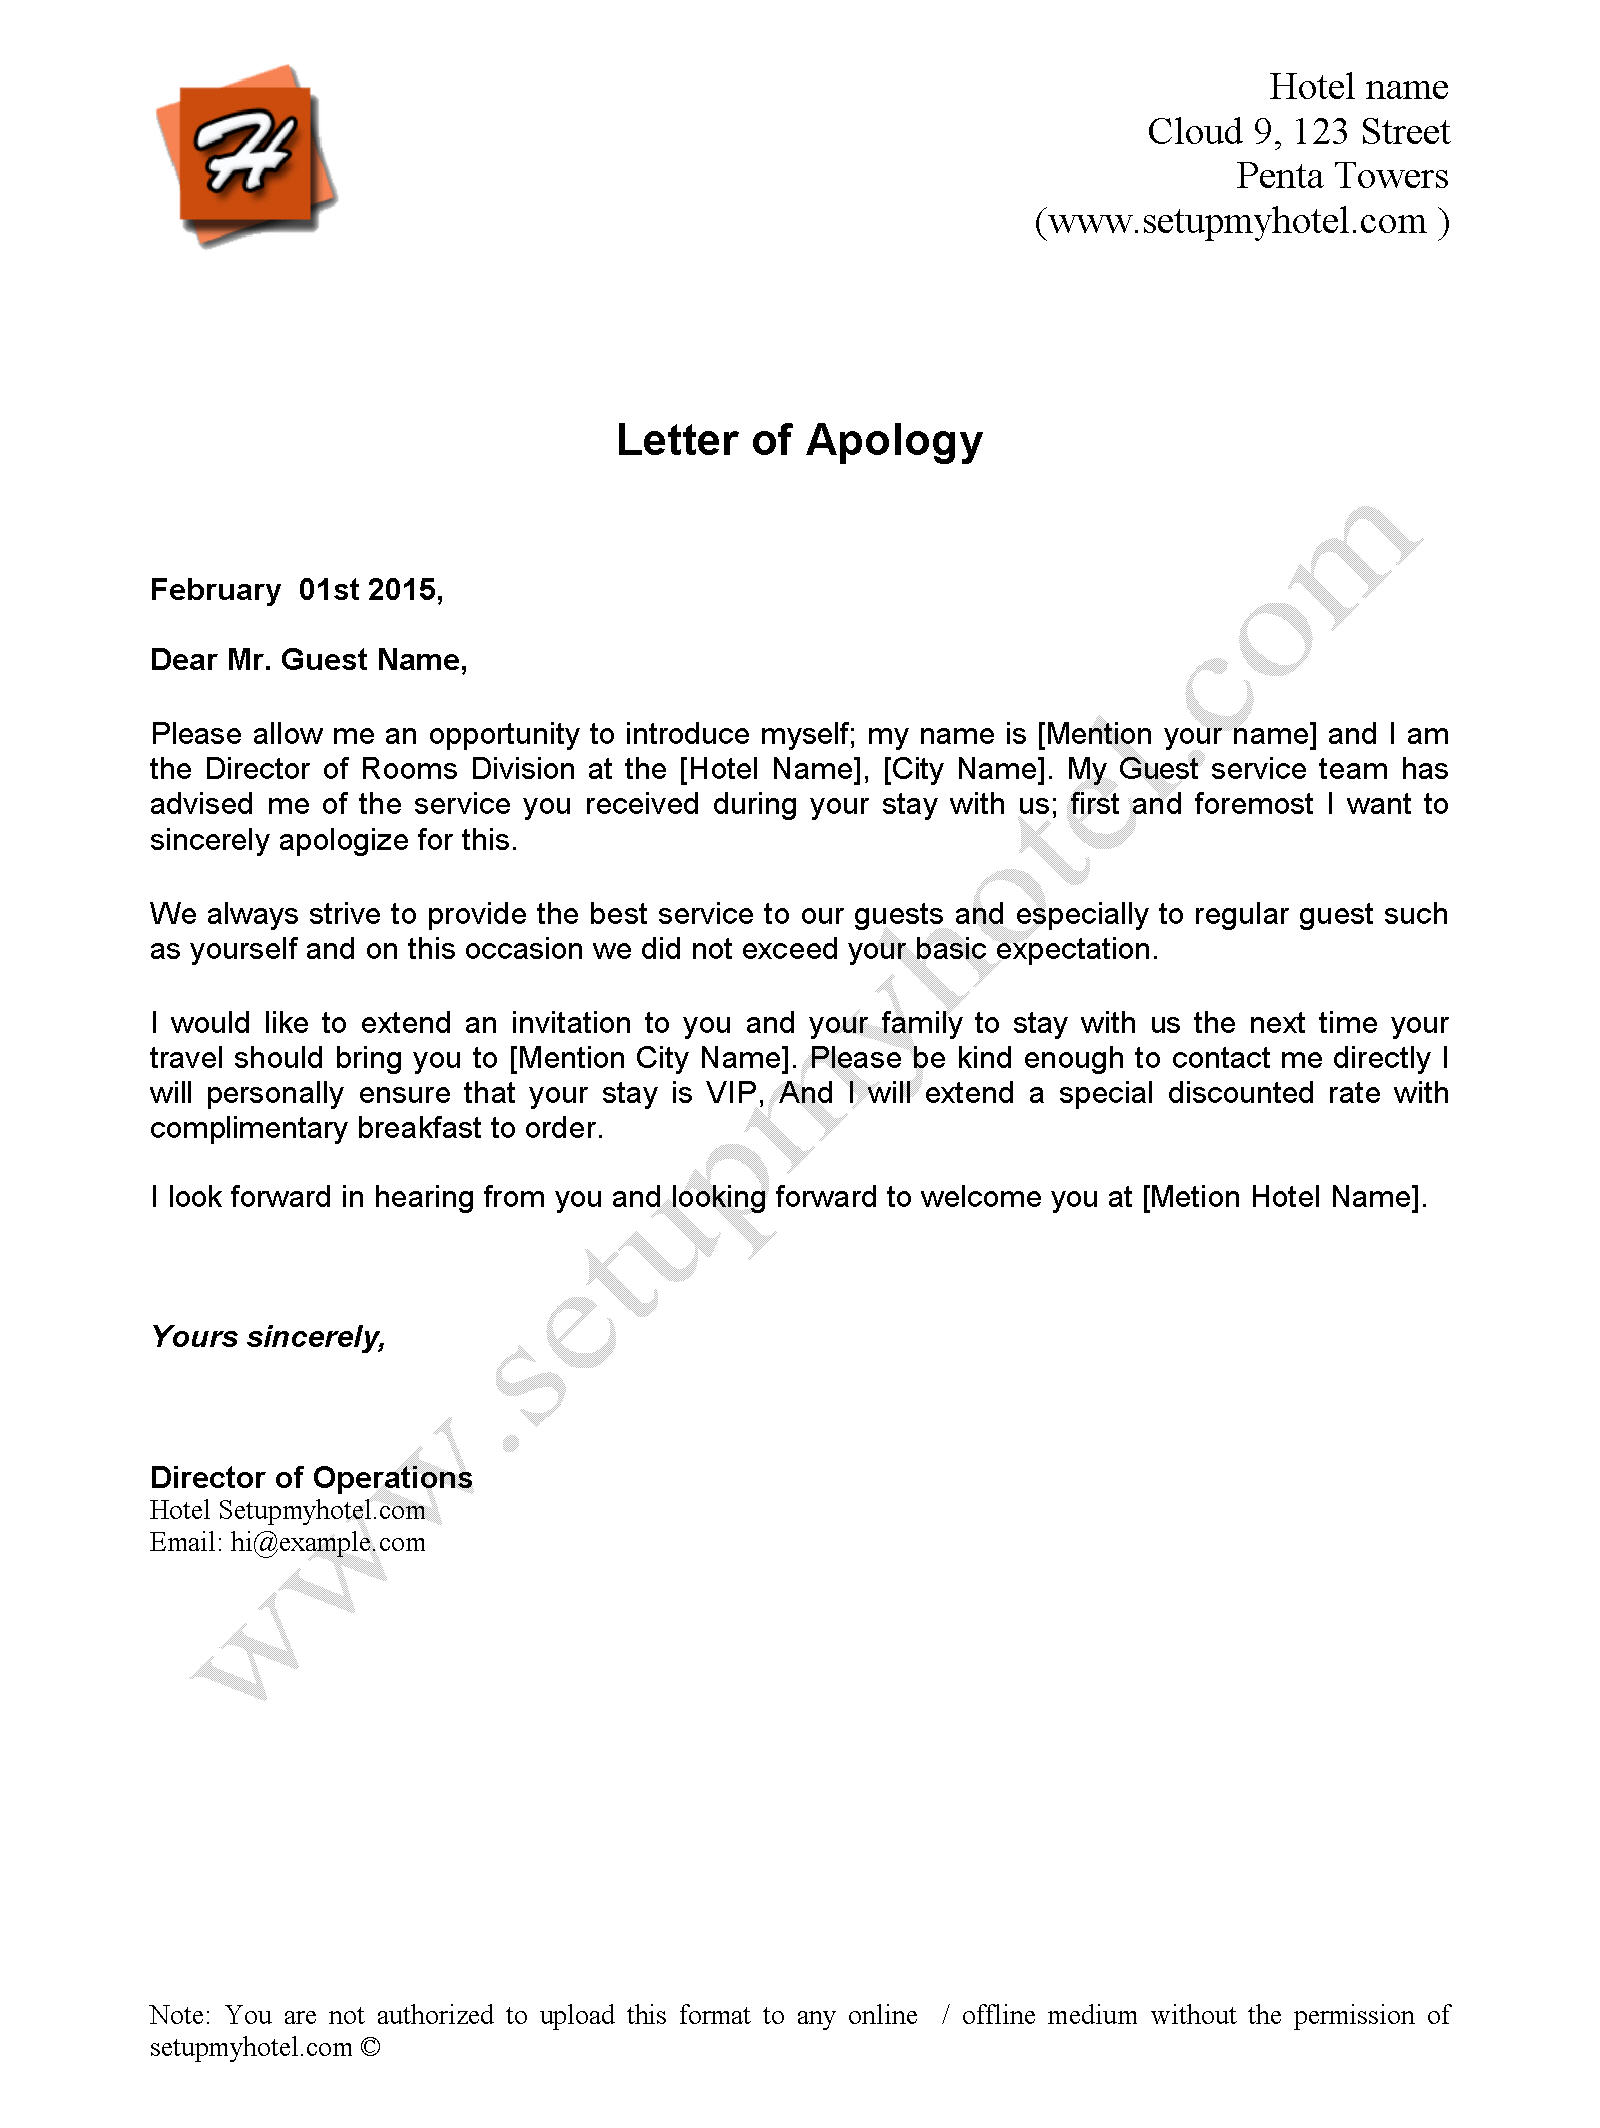 Apology Letter For El Guest